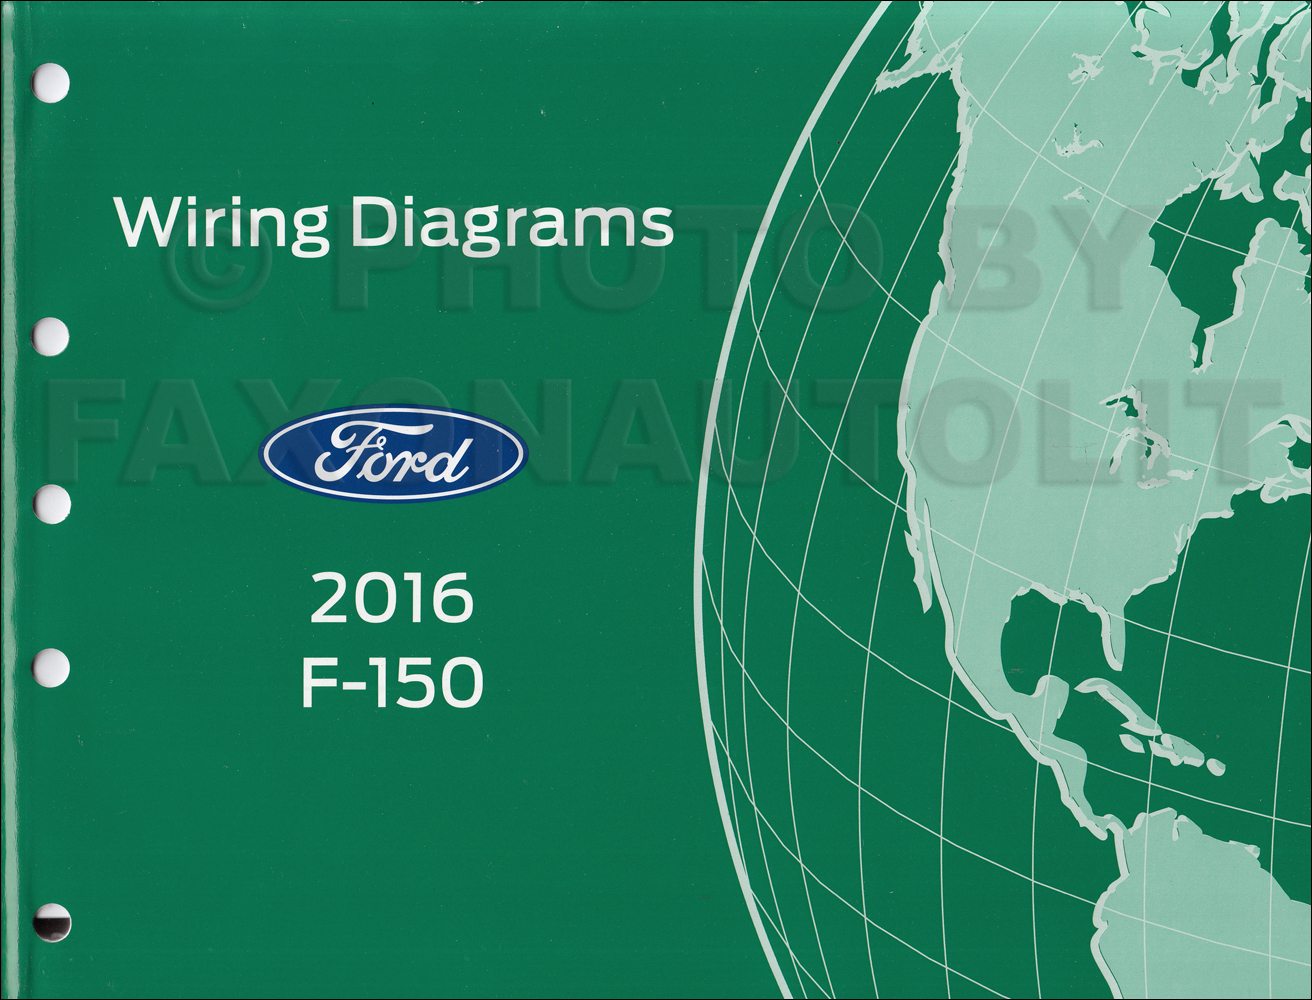 hight resolution of 2016 ford f 150 wiring diagram manual original 2016 f150 trailer wiring diagram f150 wiring diagram 2016